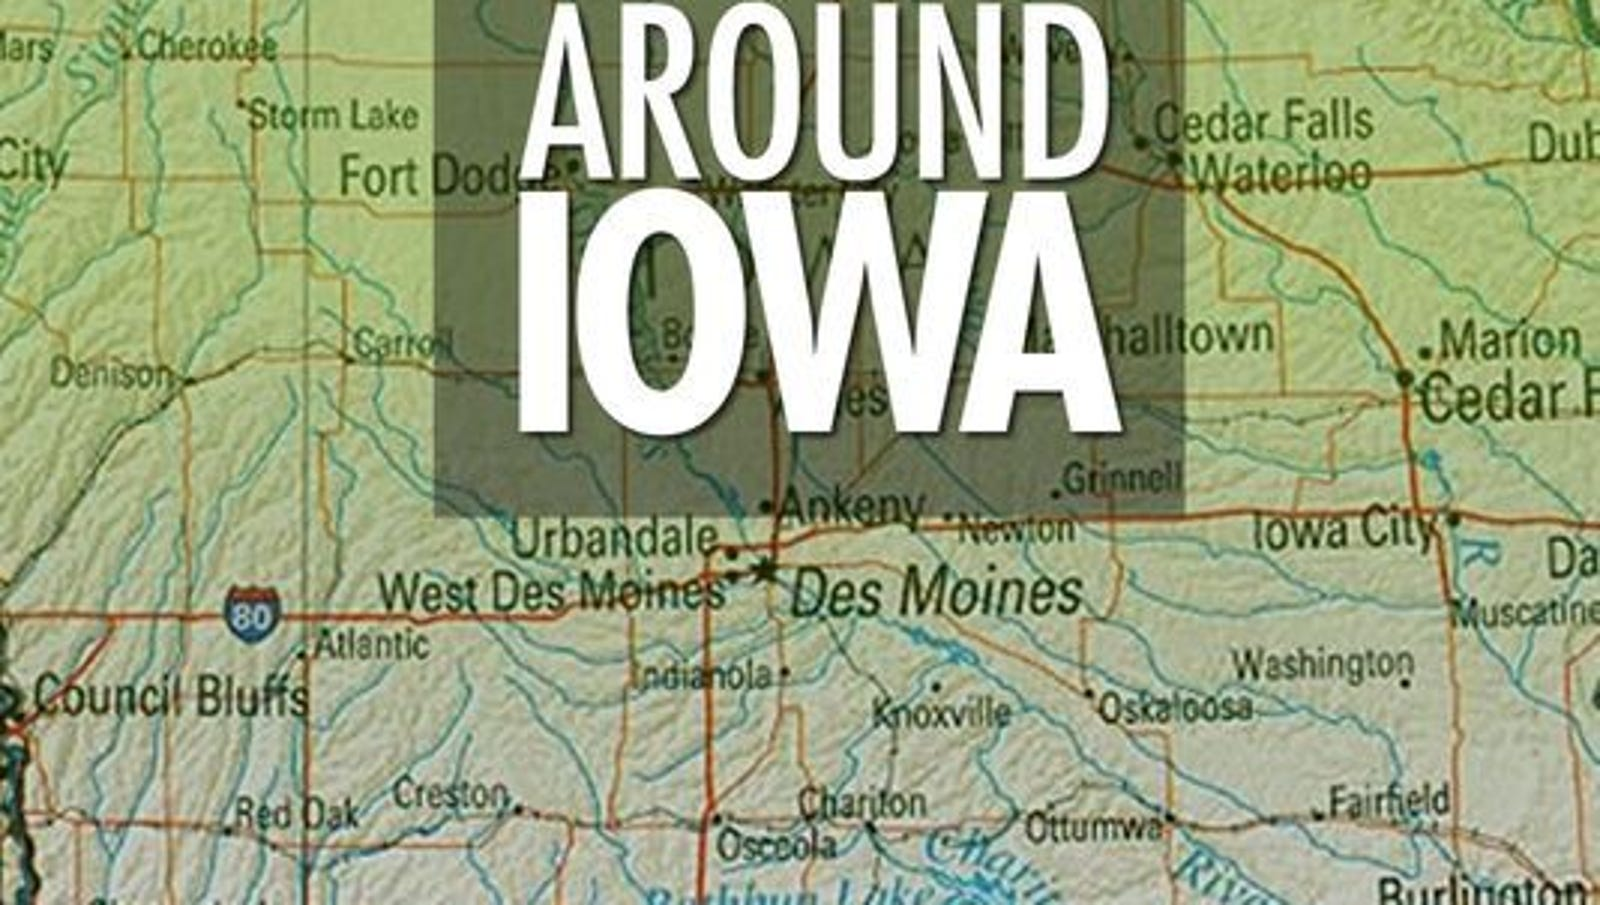 Man arrested in Mexico will face Iowa fatal assault charges